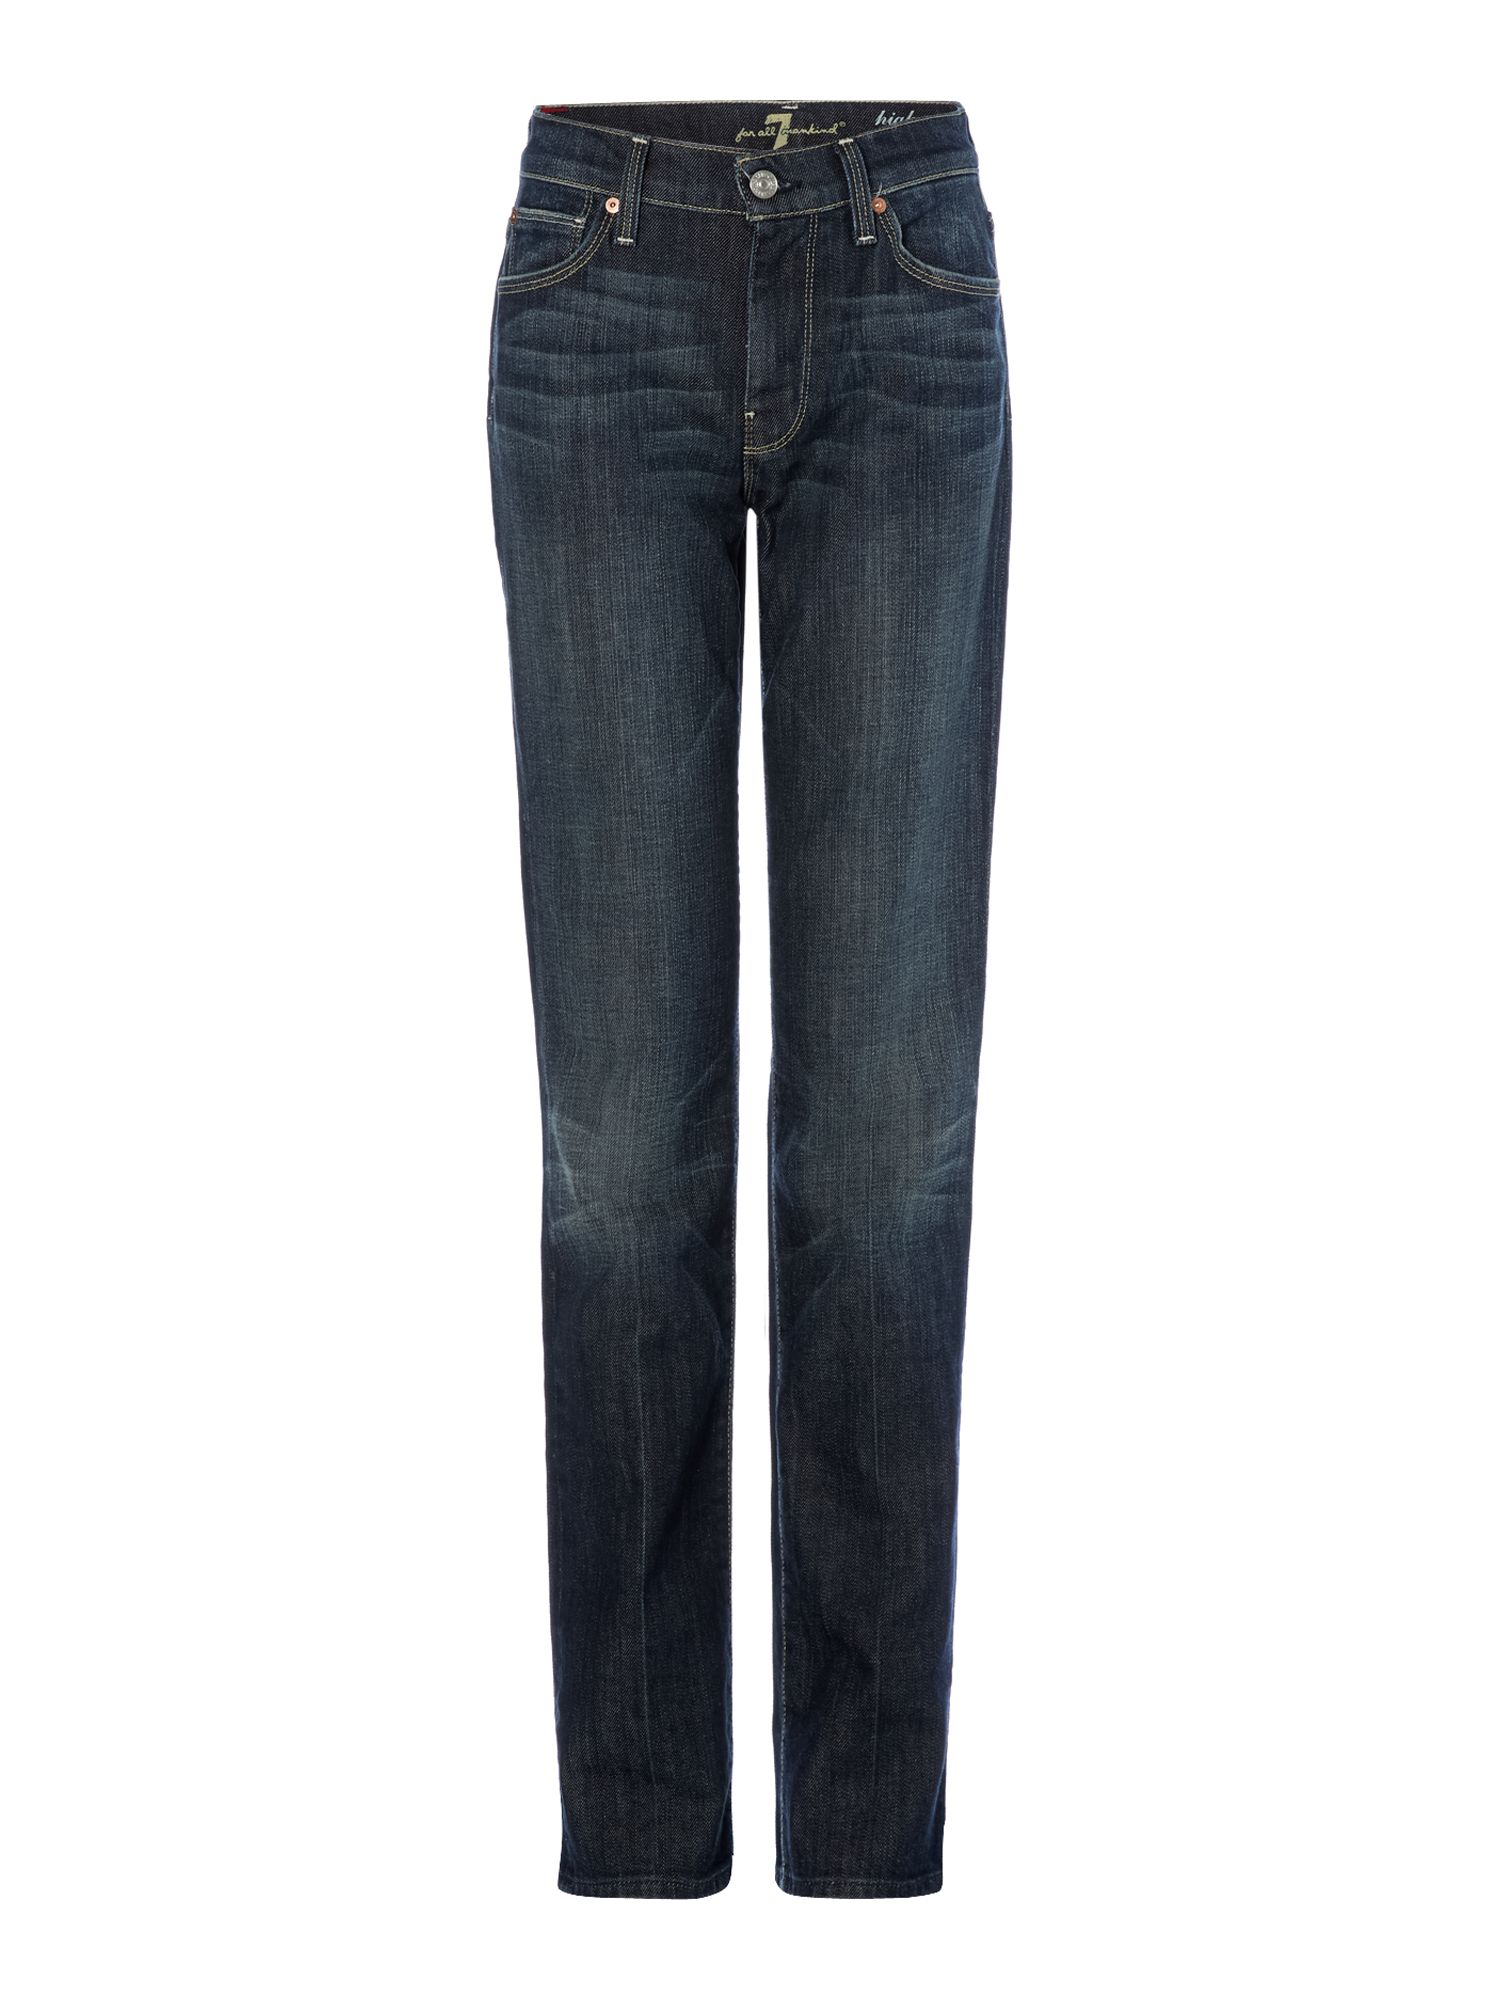 7 For All Mankind 7 For All Mankind High-waist straight leg jeans in New York Dark, Denim Mid Wash